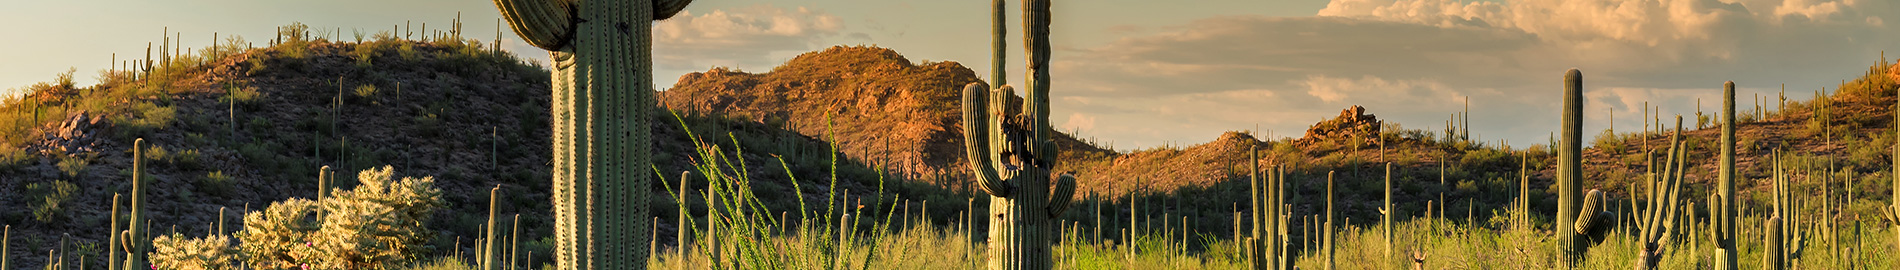 Cactus on hillside landscape